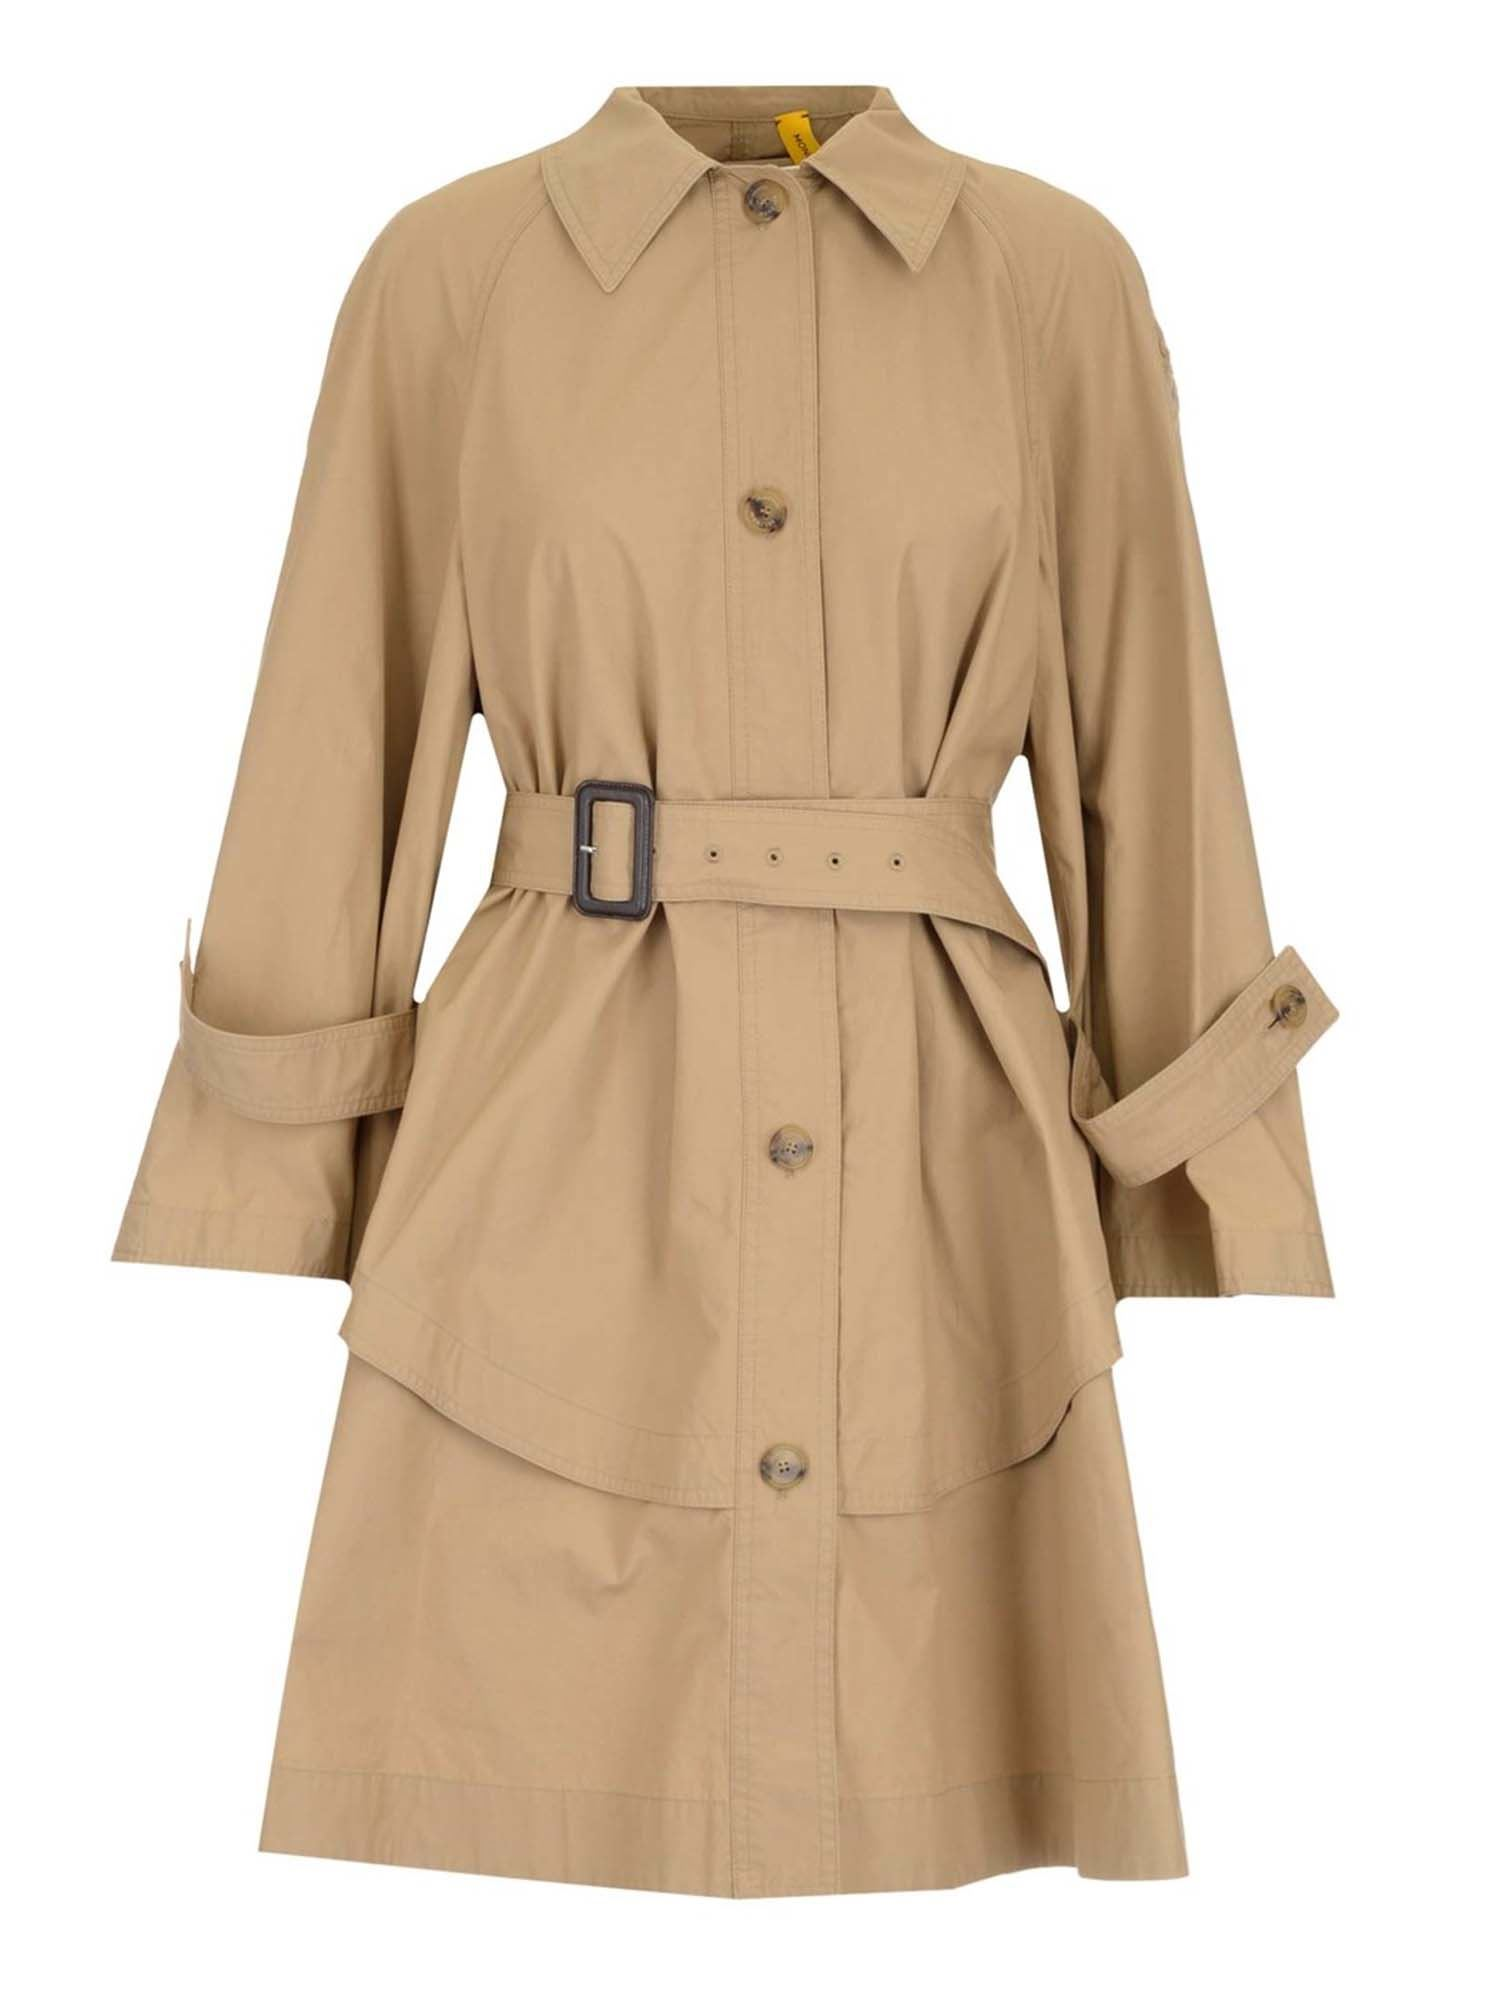 Moncler Genius DUNGENESS MONCLER JW ANDERSON TRENCH COAT IN BEIGE